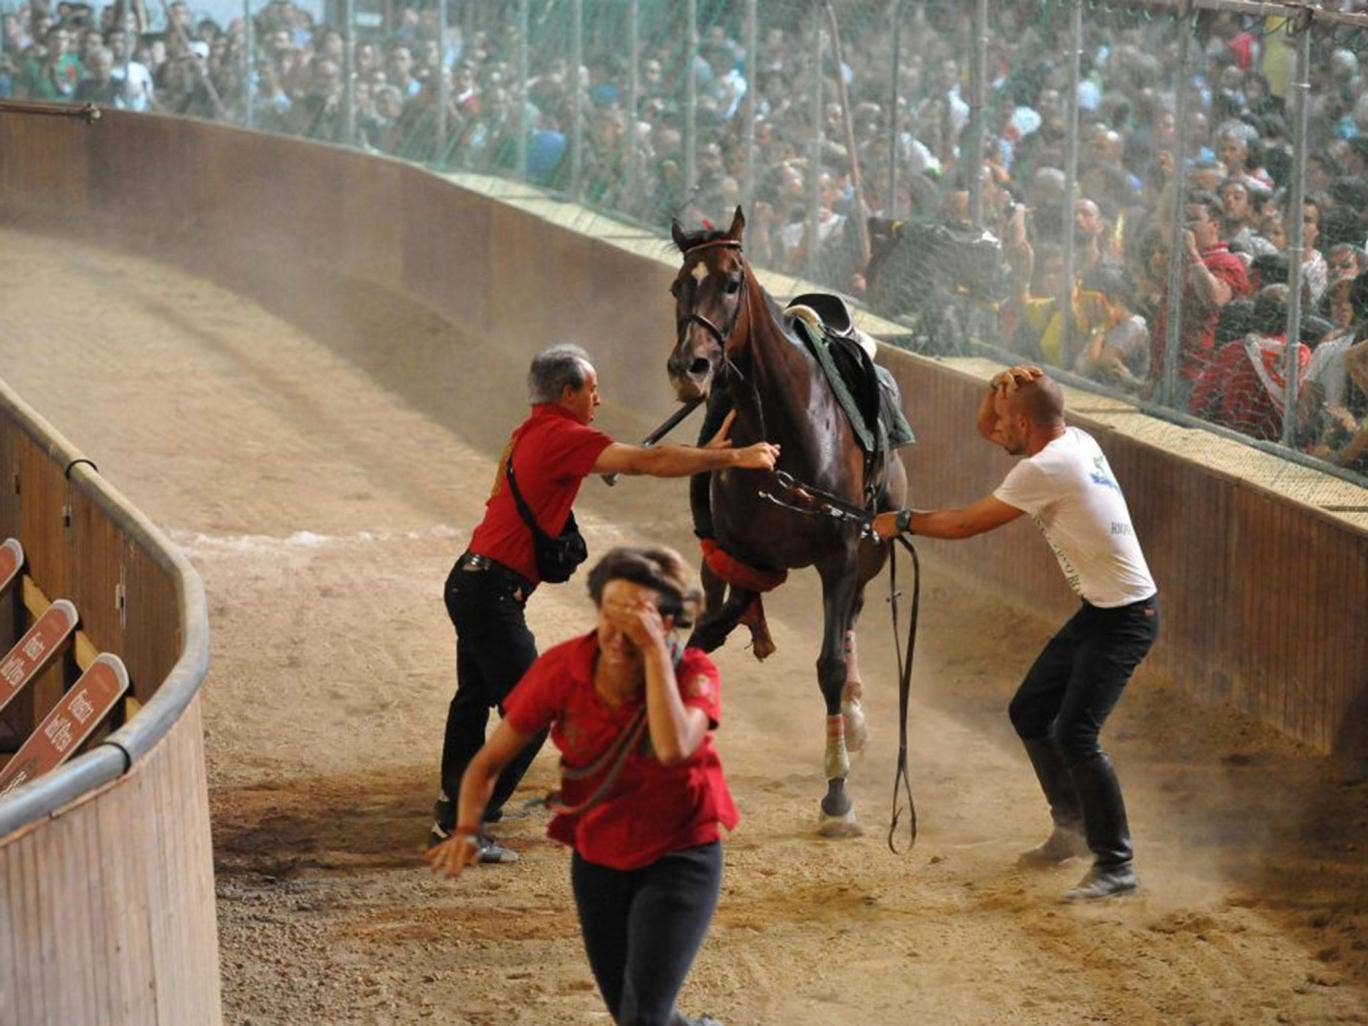 The two horses, Oracle Force and Golden Storming, were quickly destroyed by vets. The riders suffered only minor injuries